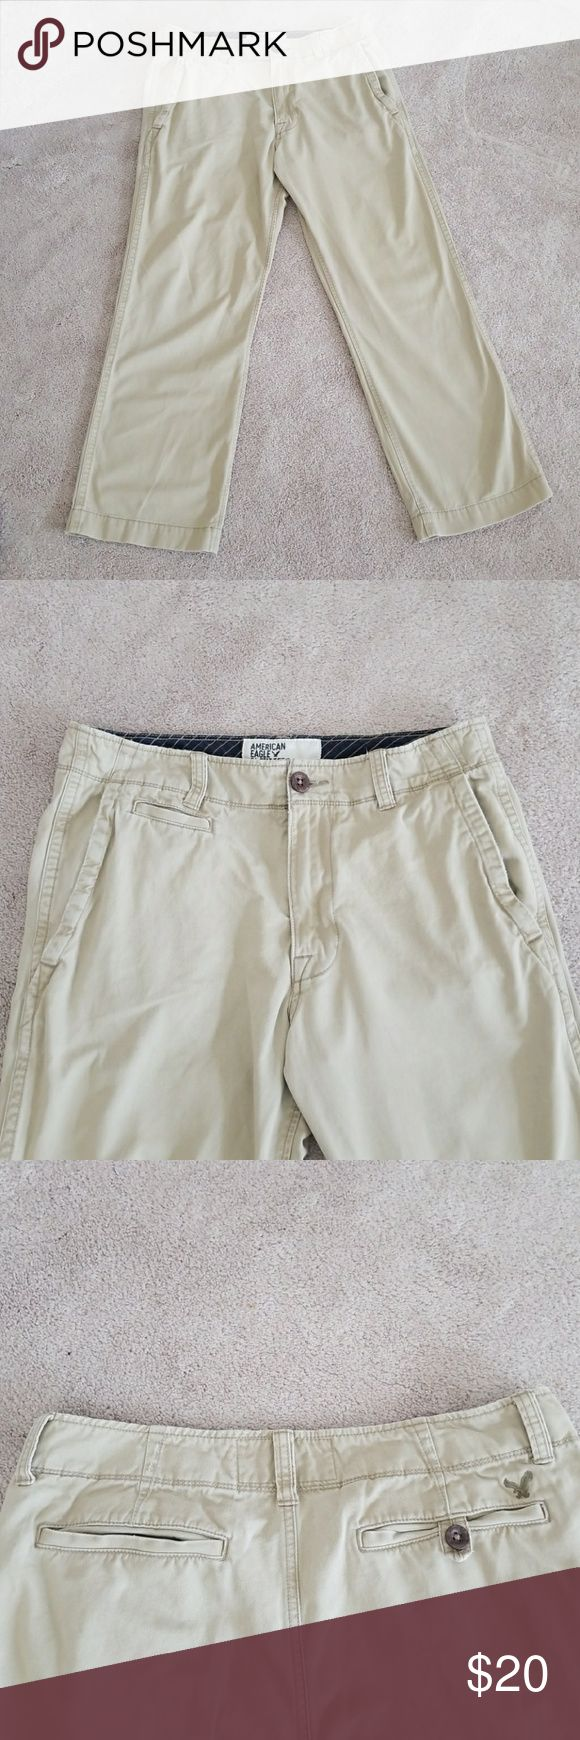 "American Eagle men's khaki pants, 34x30 Excellent condition, men's A&E khaki pants, size 34x30, worn a few times but too short for my husband. No stains tears. Has some minor fashion ""distressed"" look to bottom if cuffs and pocket area as seen in photo. Great for work or dinner! American Eagle Outfitters Pants Chinos & Khakis"